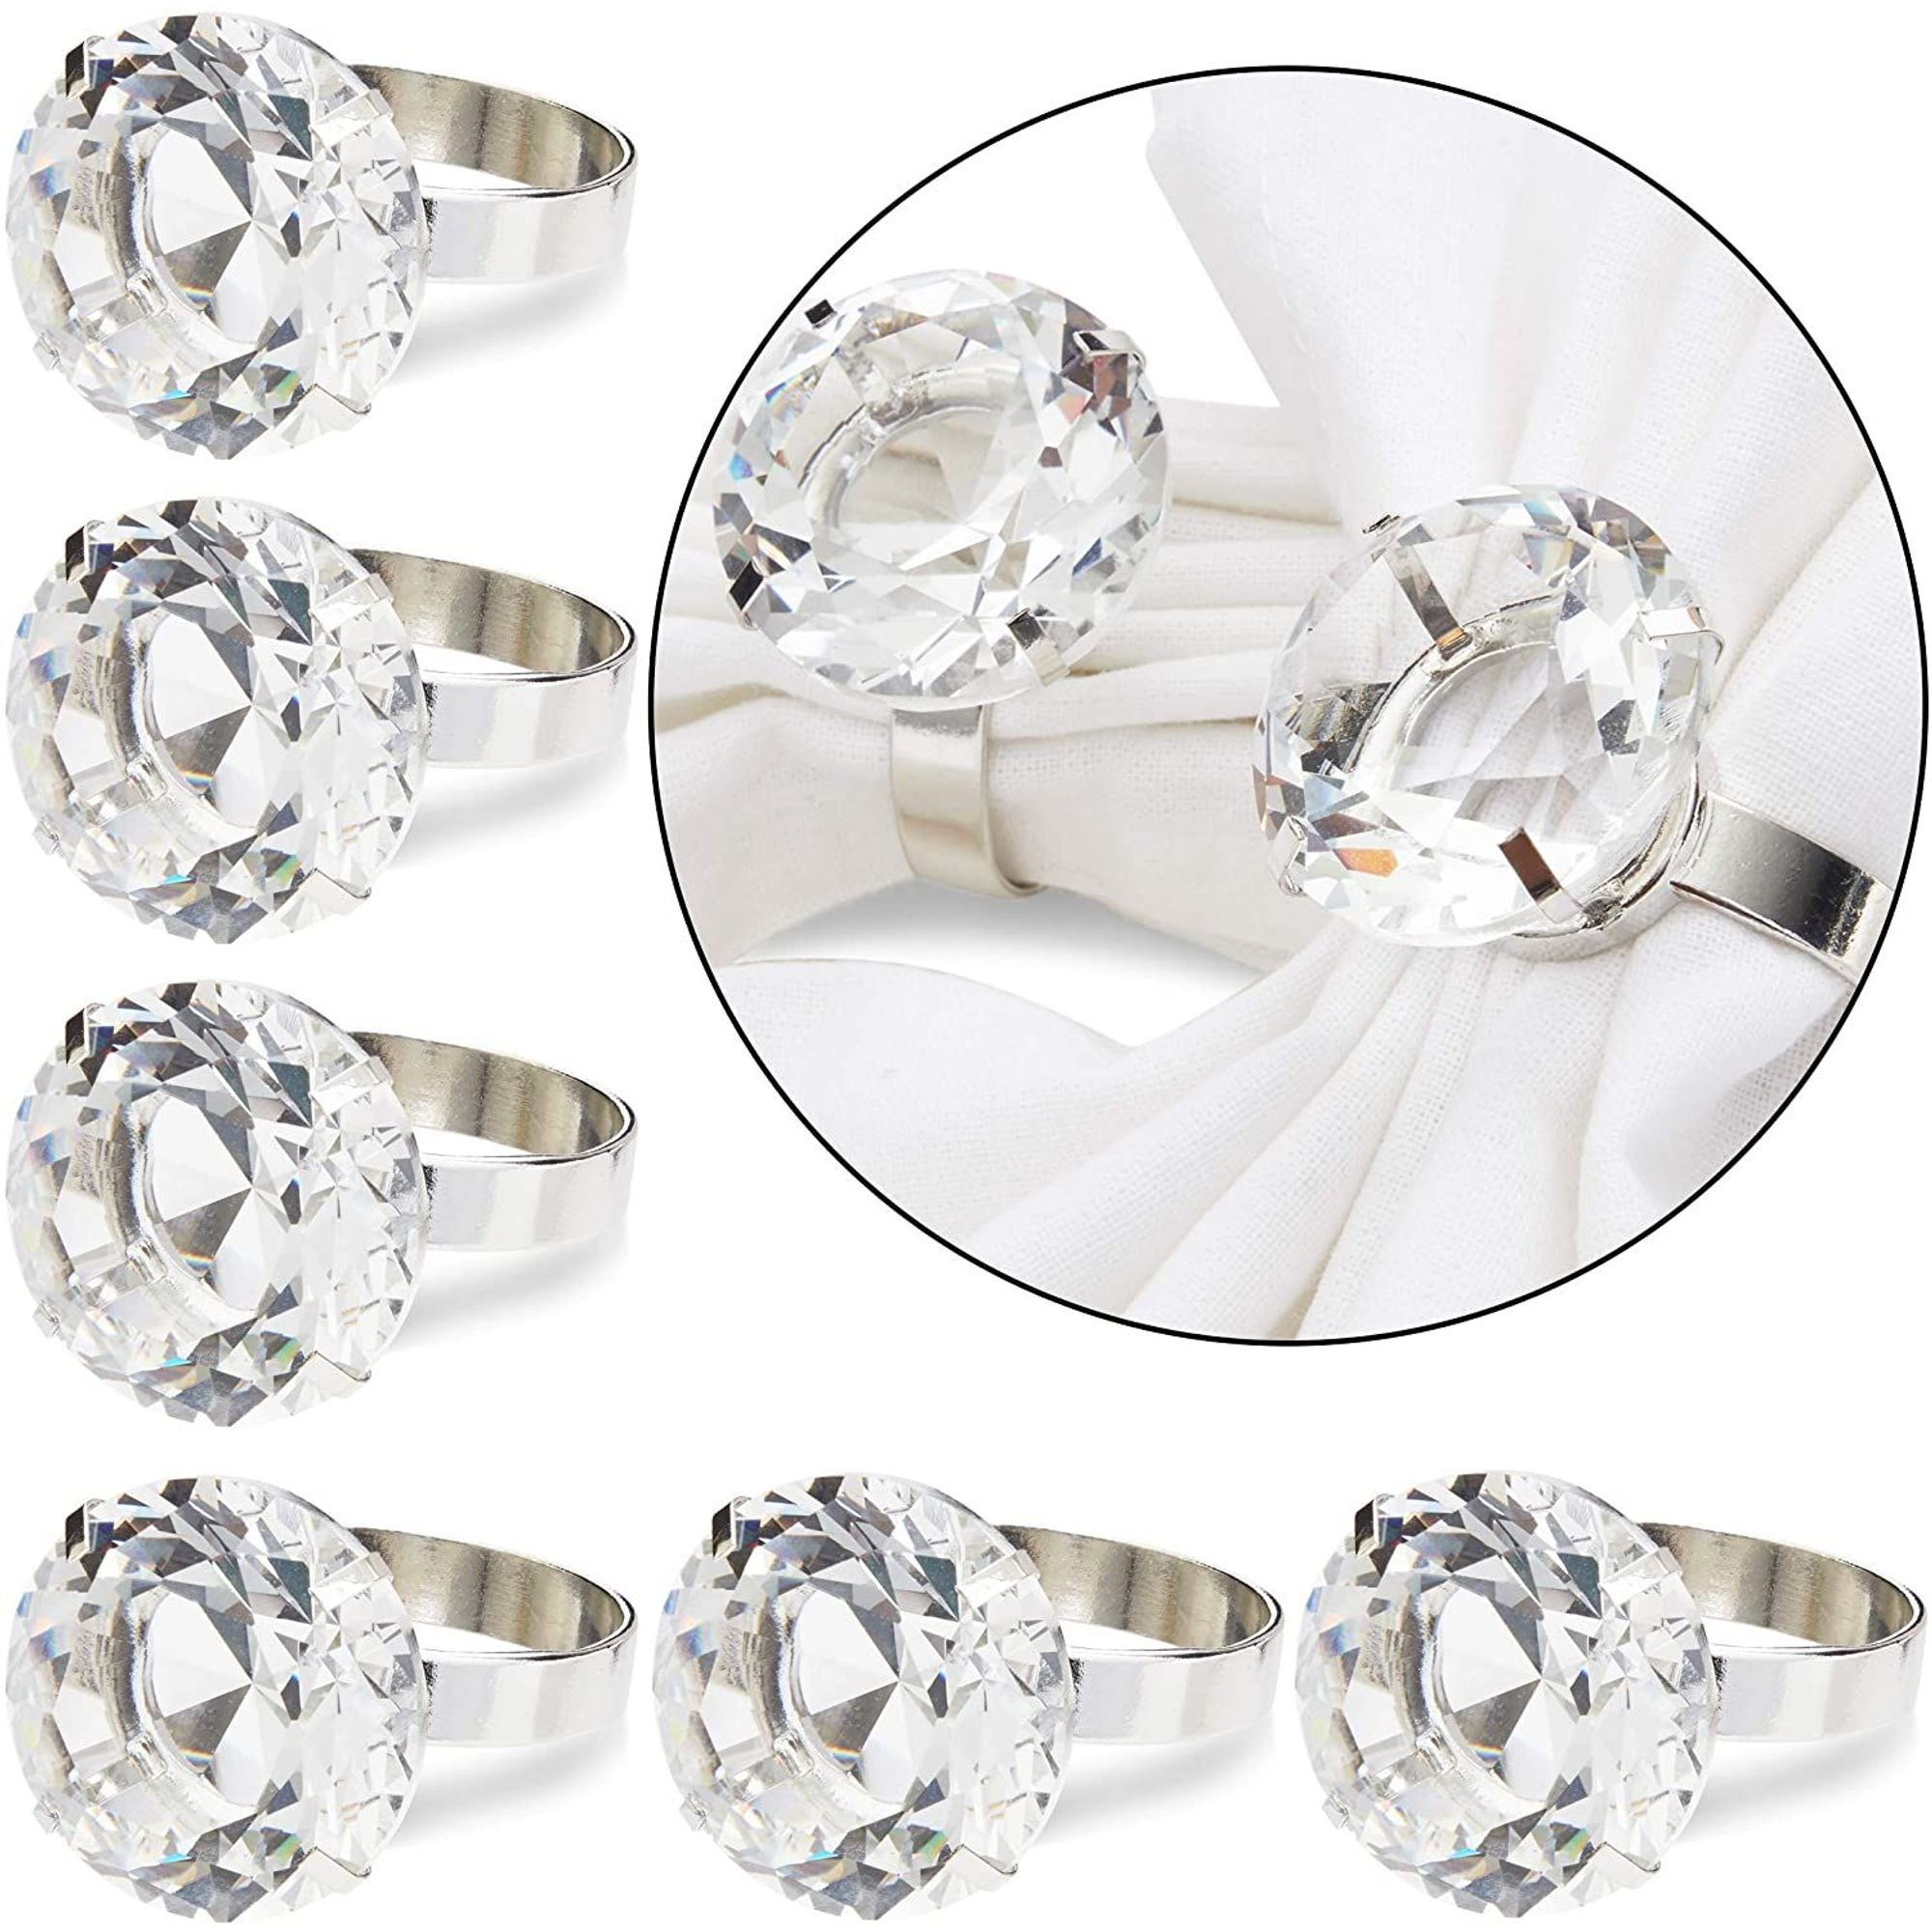 6 Pack Crystal Diamond Silver Napkin Rings For Wedding Banquet Party Dinner Table Decorations Walmart Com Walmart Com